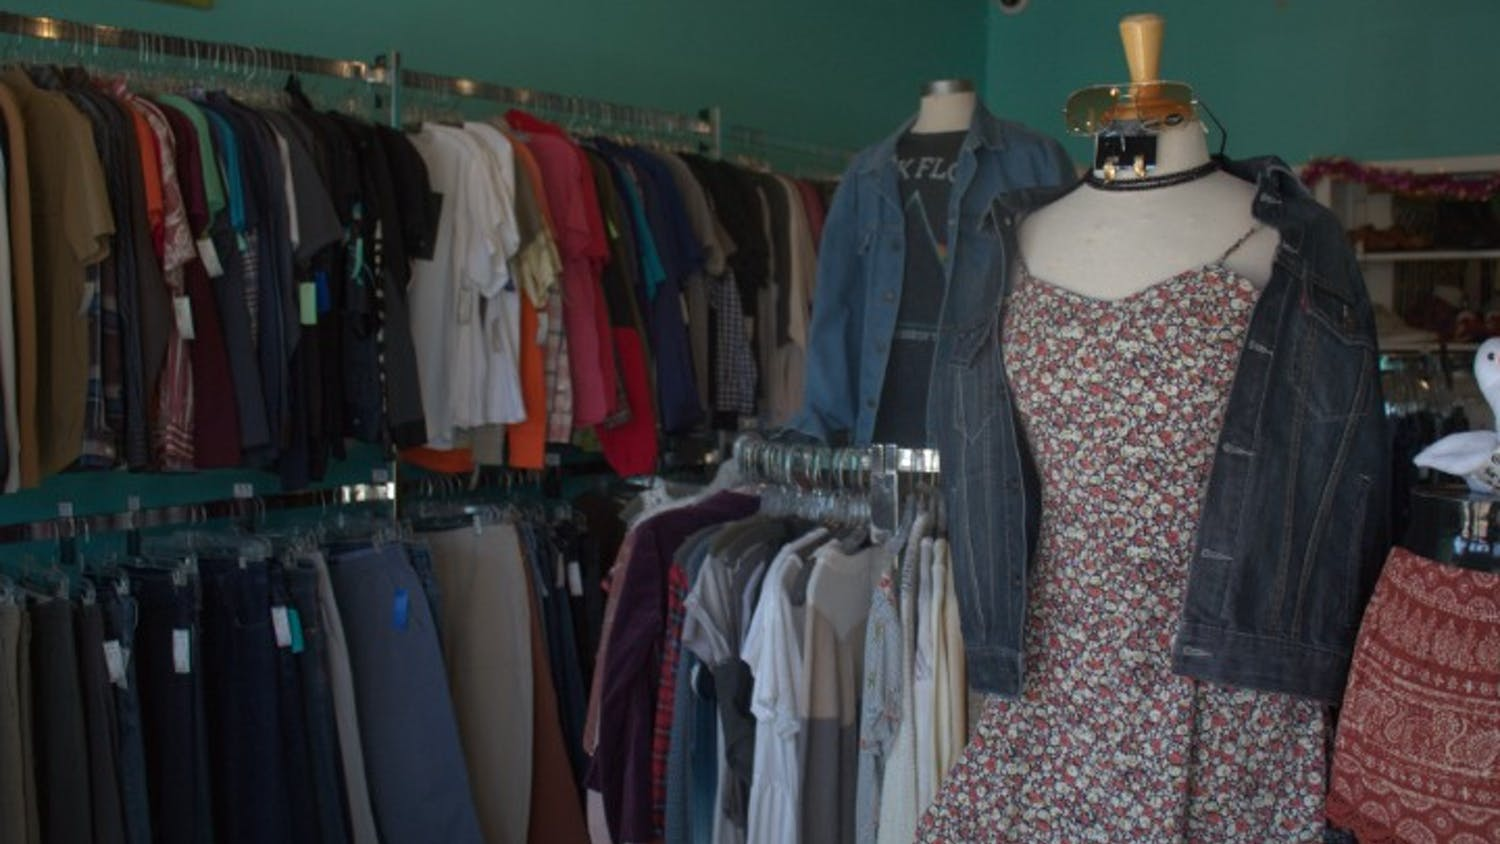 A collection of clothes sits on display at Sid & Nancy, a thrift store in Five Points.